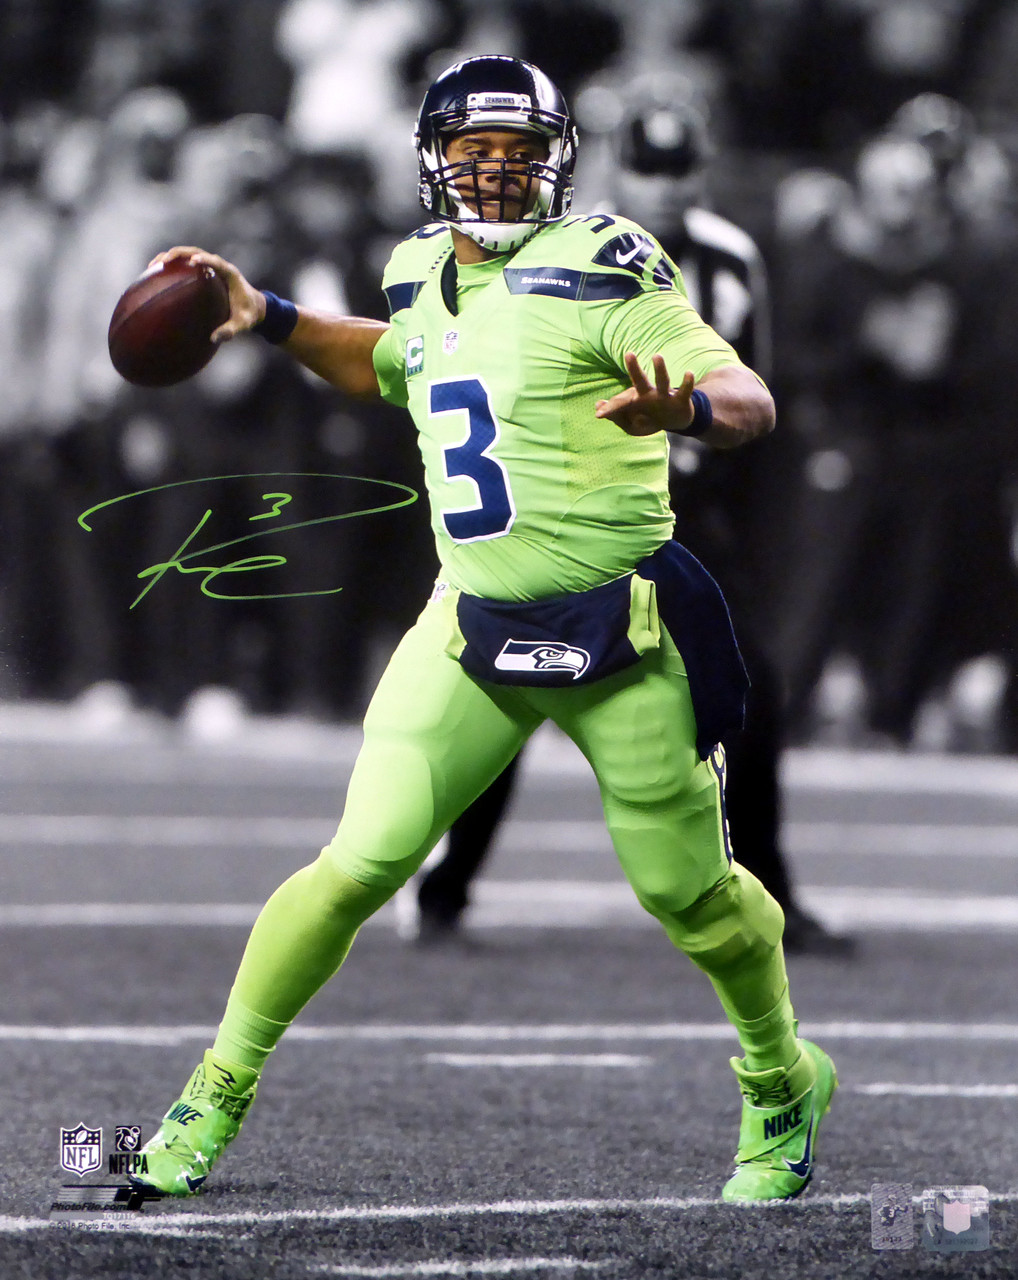 separation shoes ad058 70ac4 Russell Wilson Autographed 16x20 Photo Seattle Seahawks Action Green Color  Rush RW Holo Stock #123810